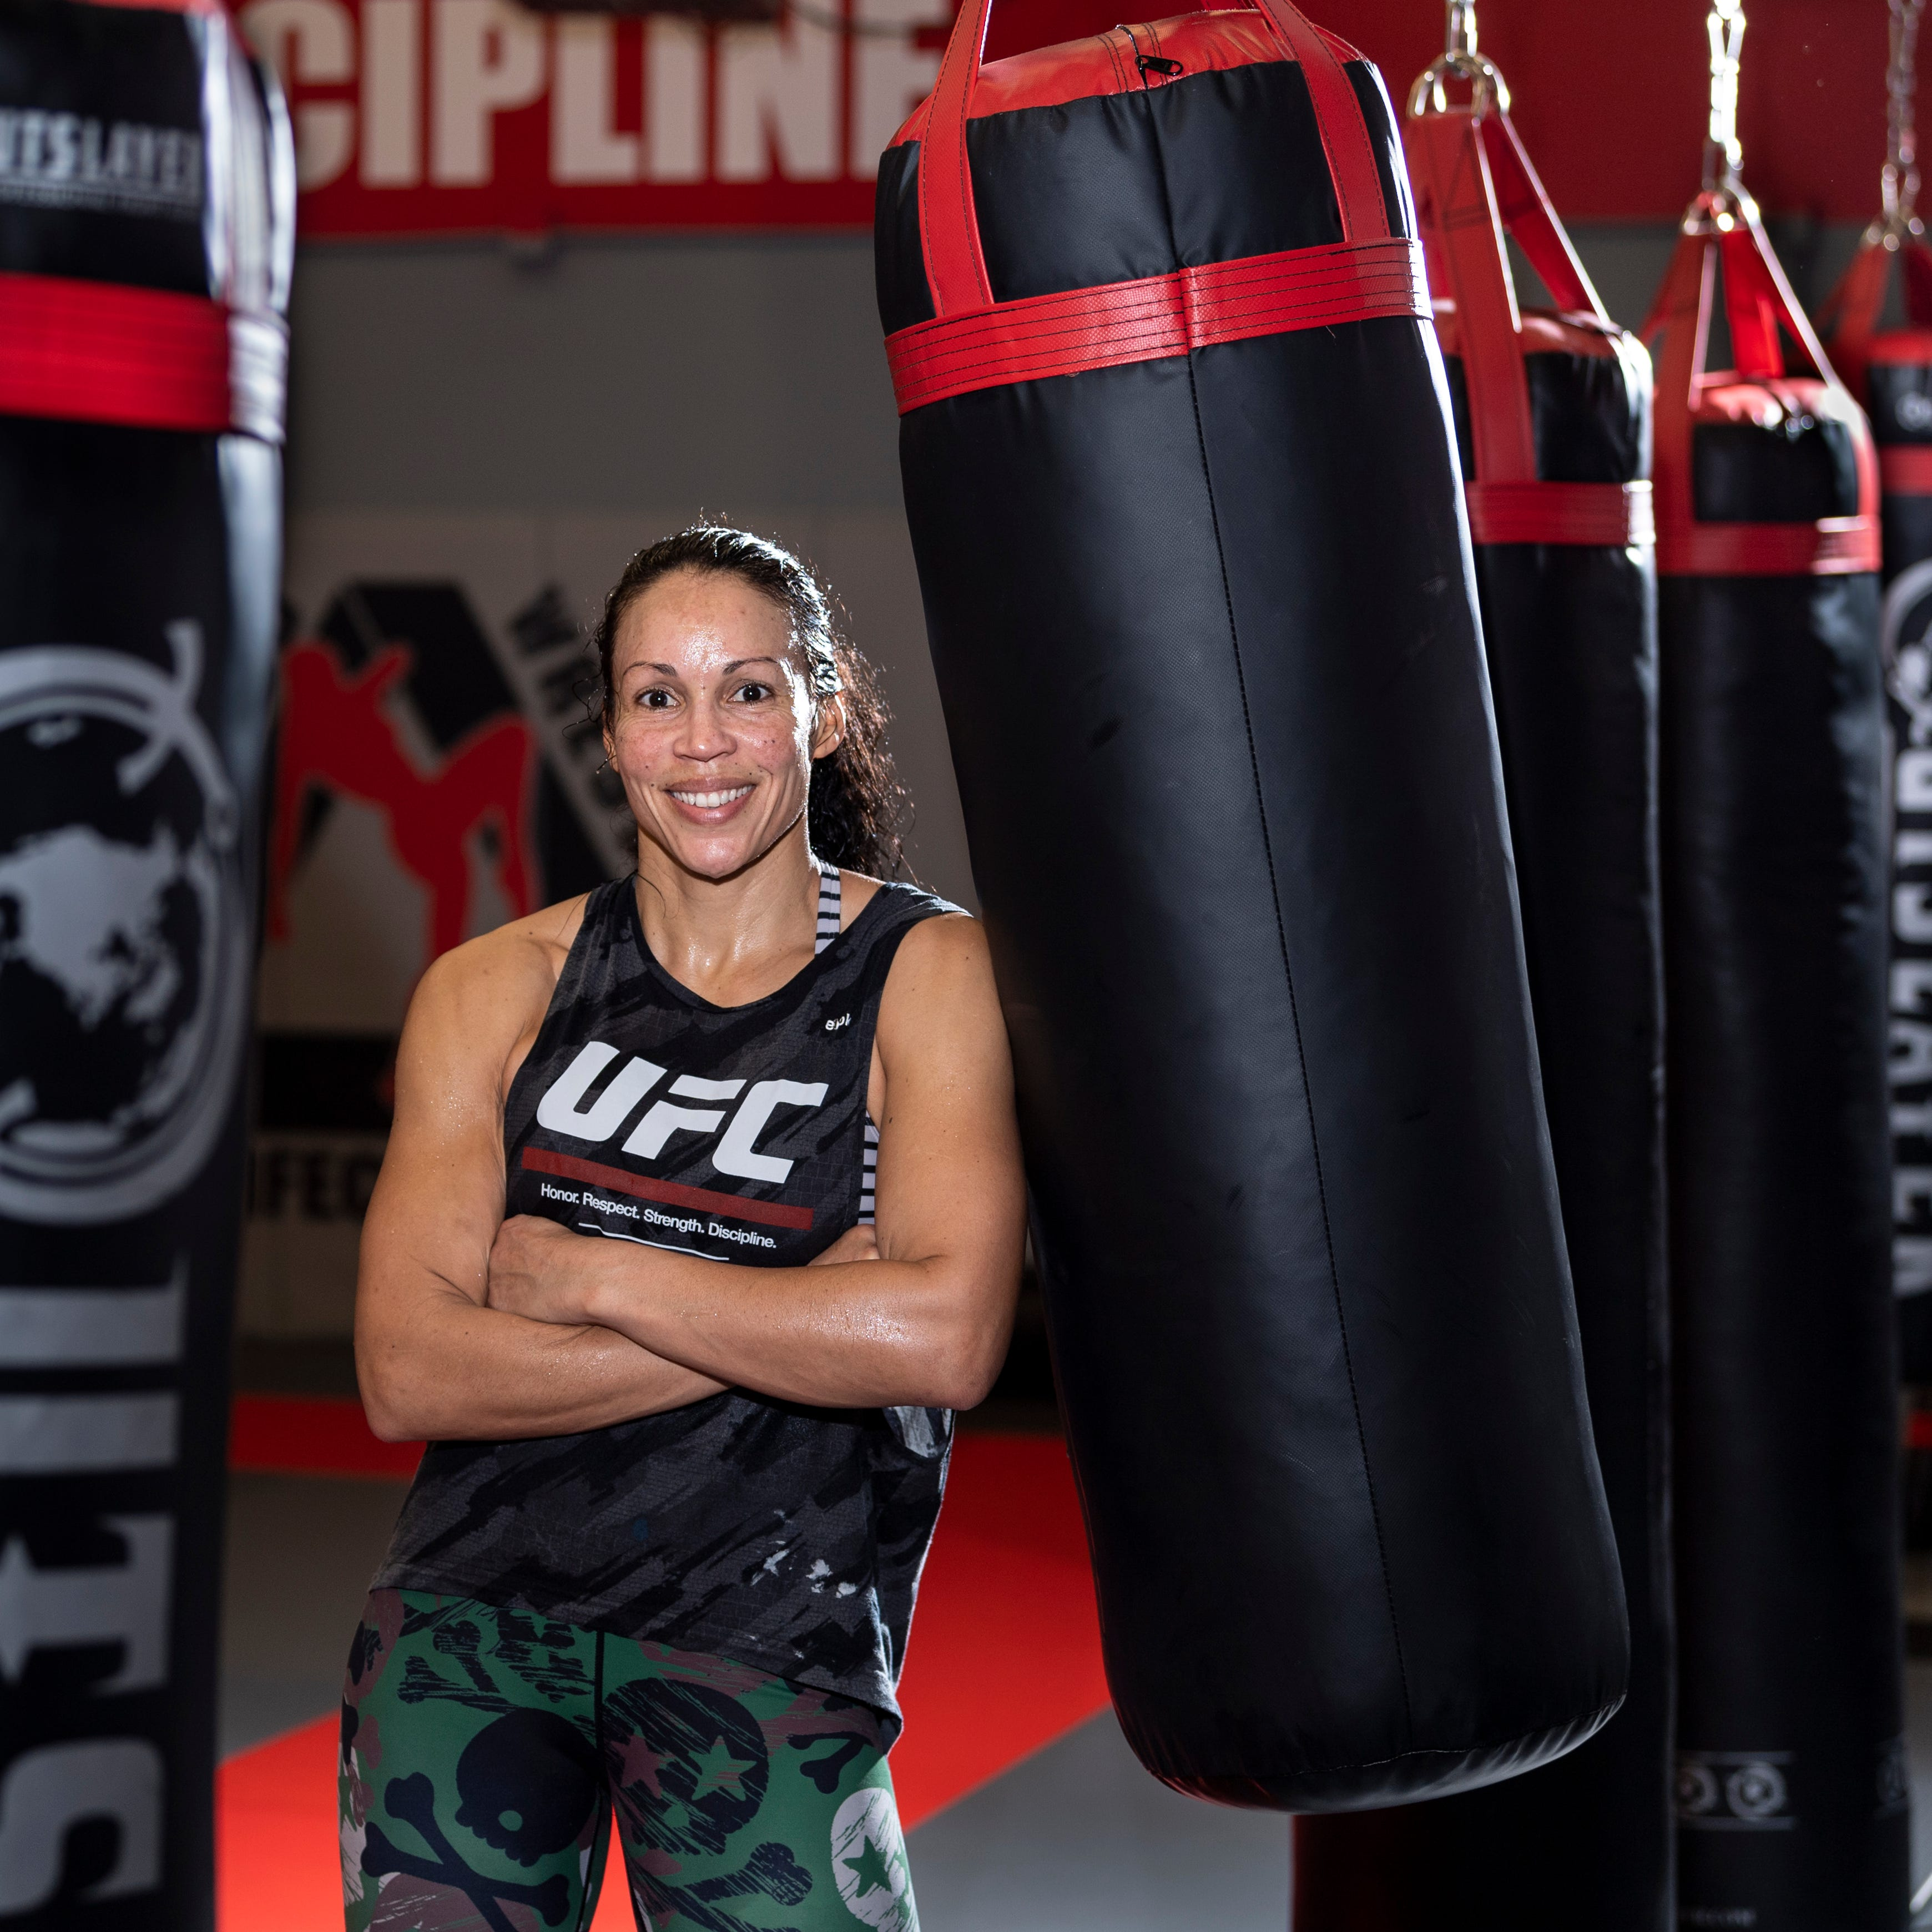 How does this mom balance life as a UFC fighter and full-time teacher?